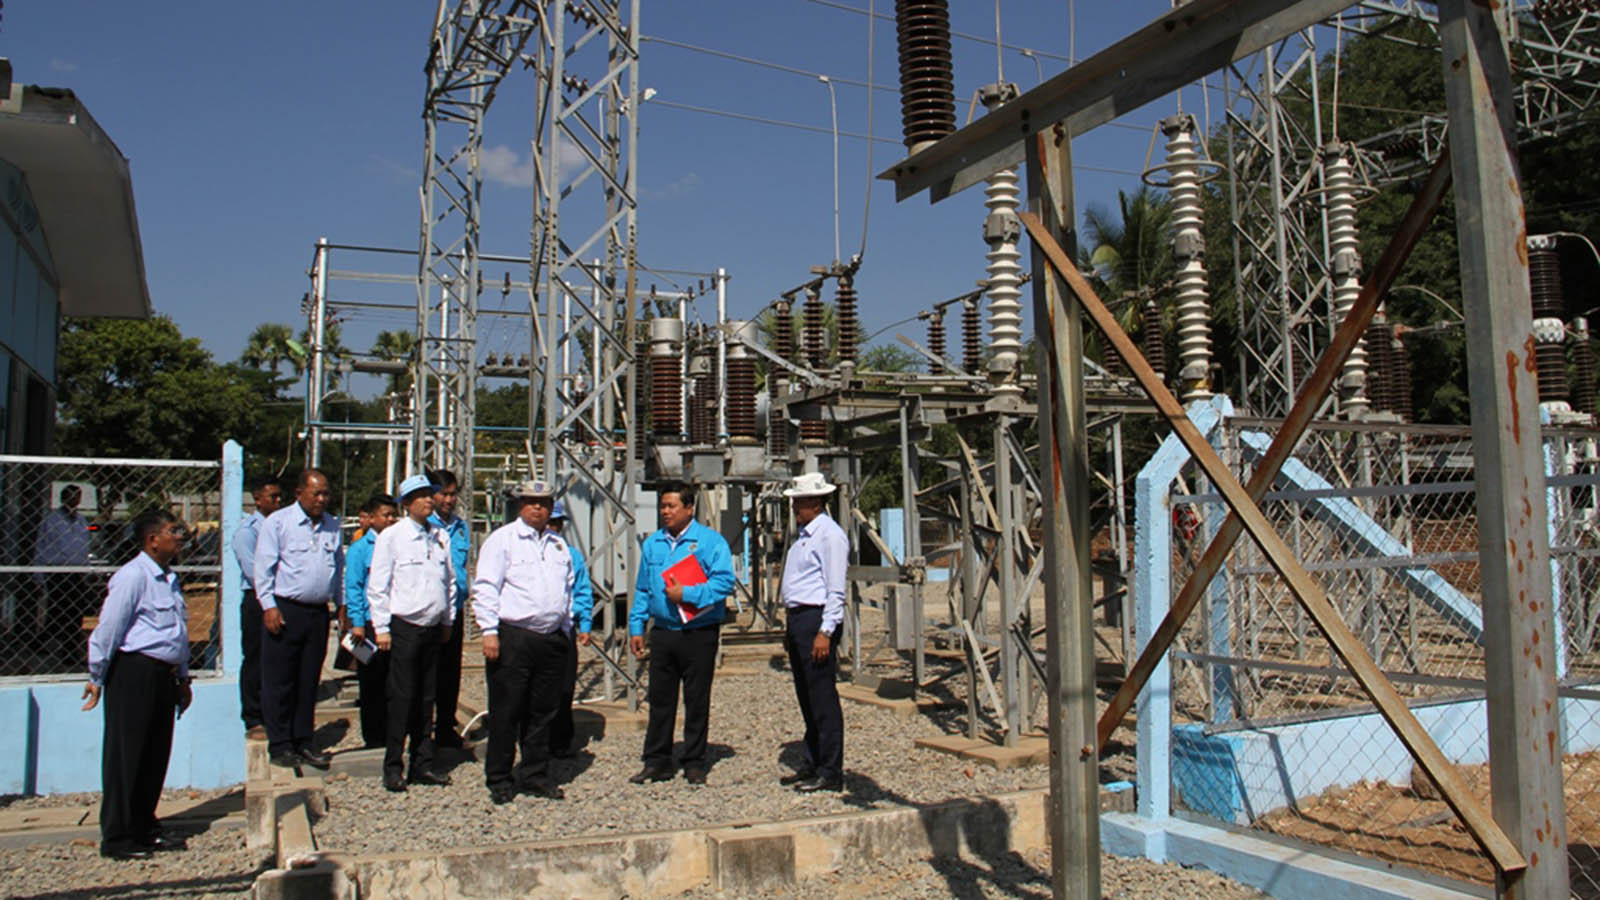 Union Minister U Win Khaing and party inspect the 66kVA Pannaetaw sub-power station in Kyaukpadaung.  Photo: MNA